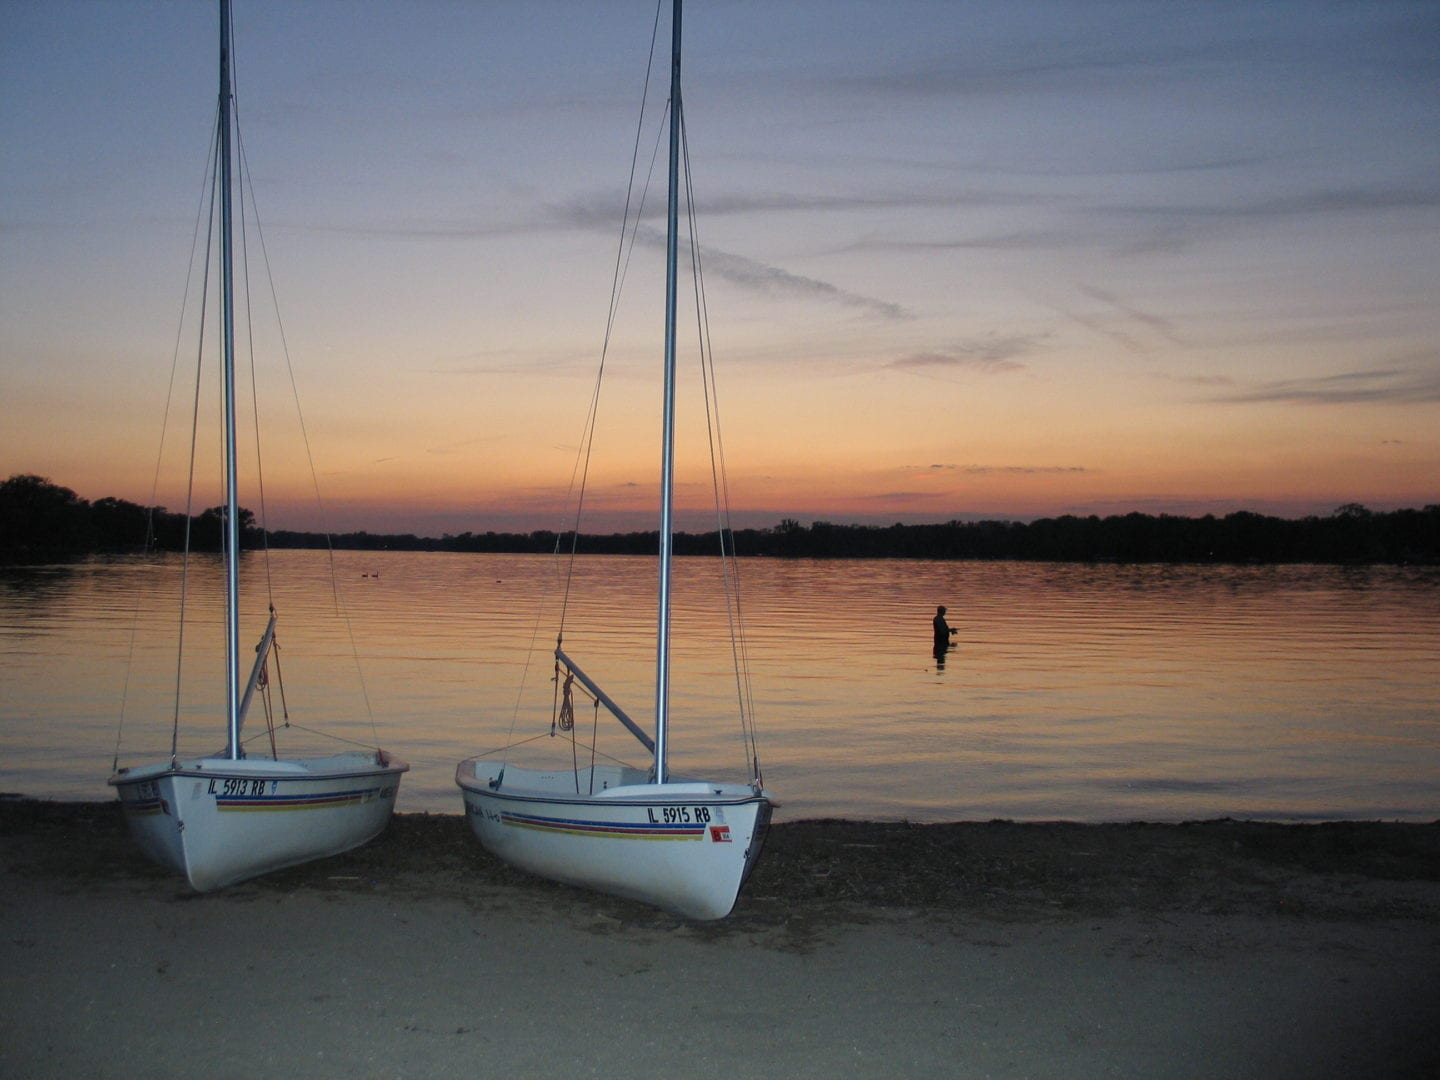 Two sailboats safely on shore